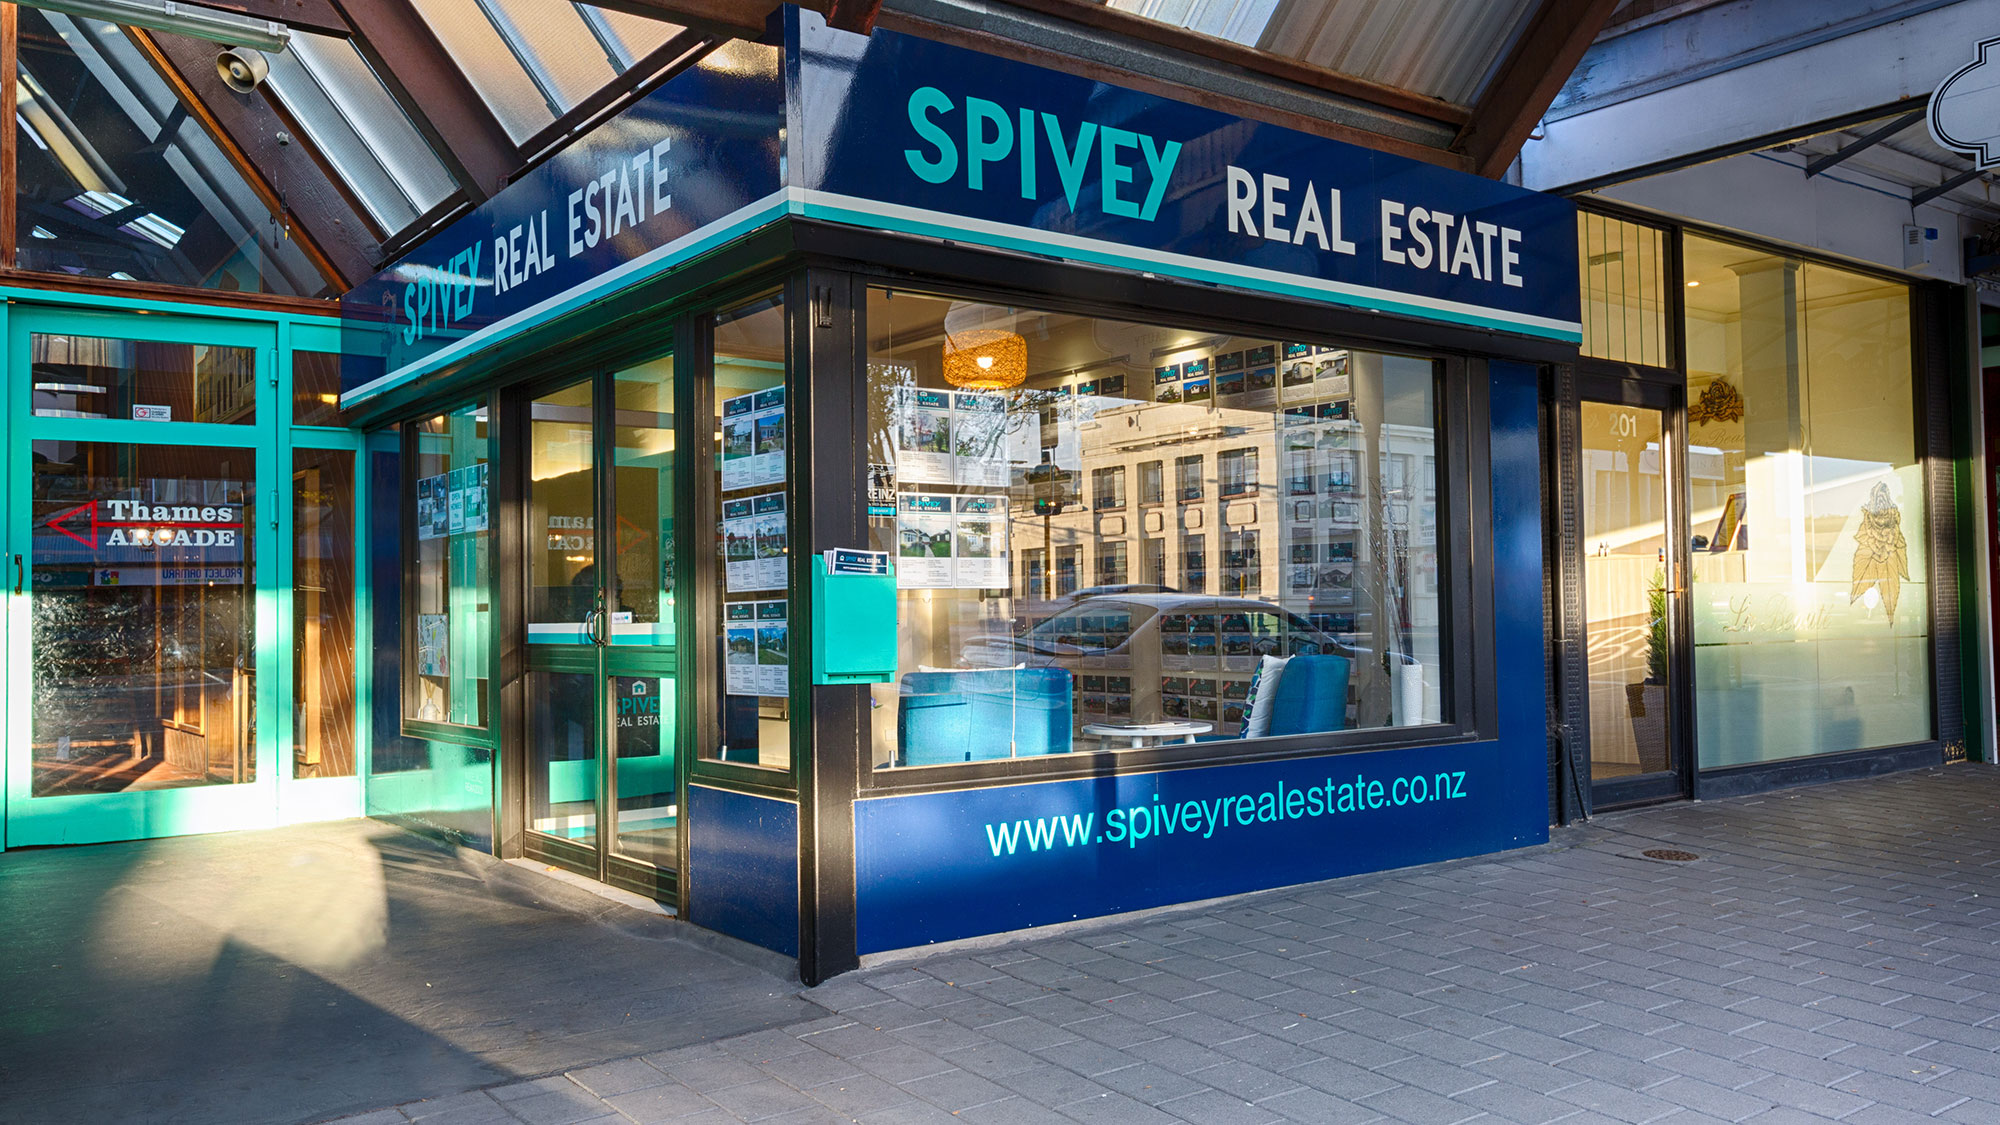 Spivey-Real-Estate-1.jpg